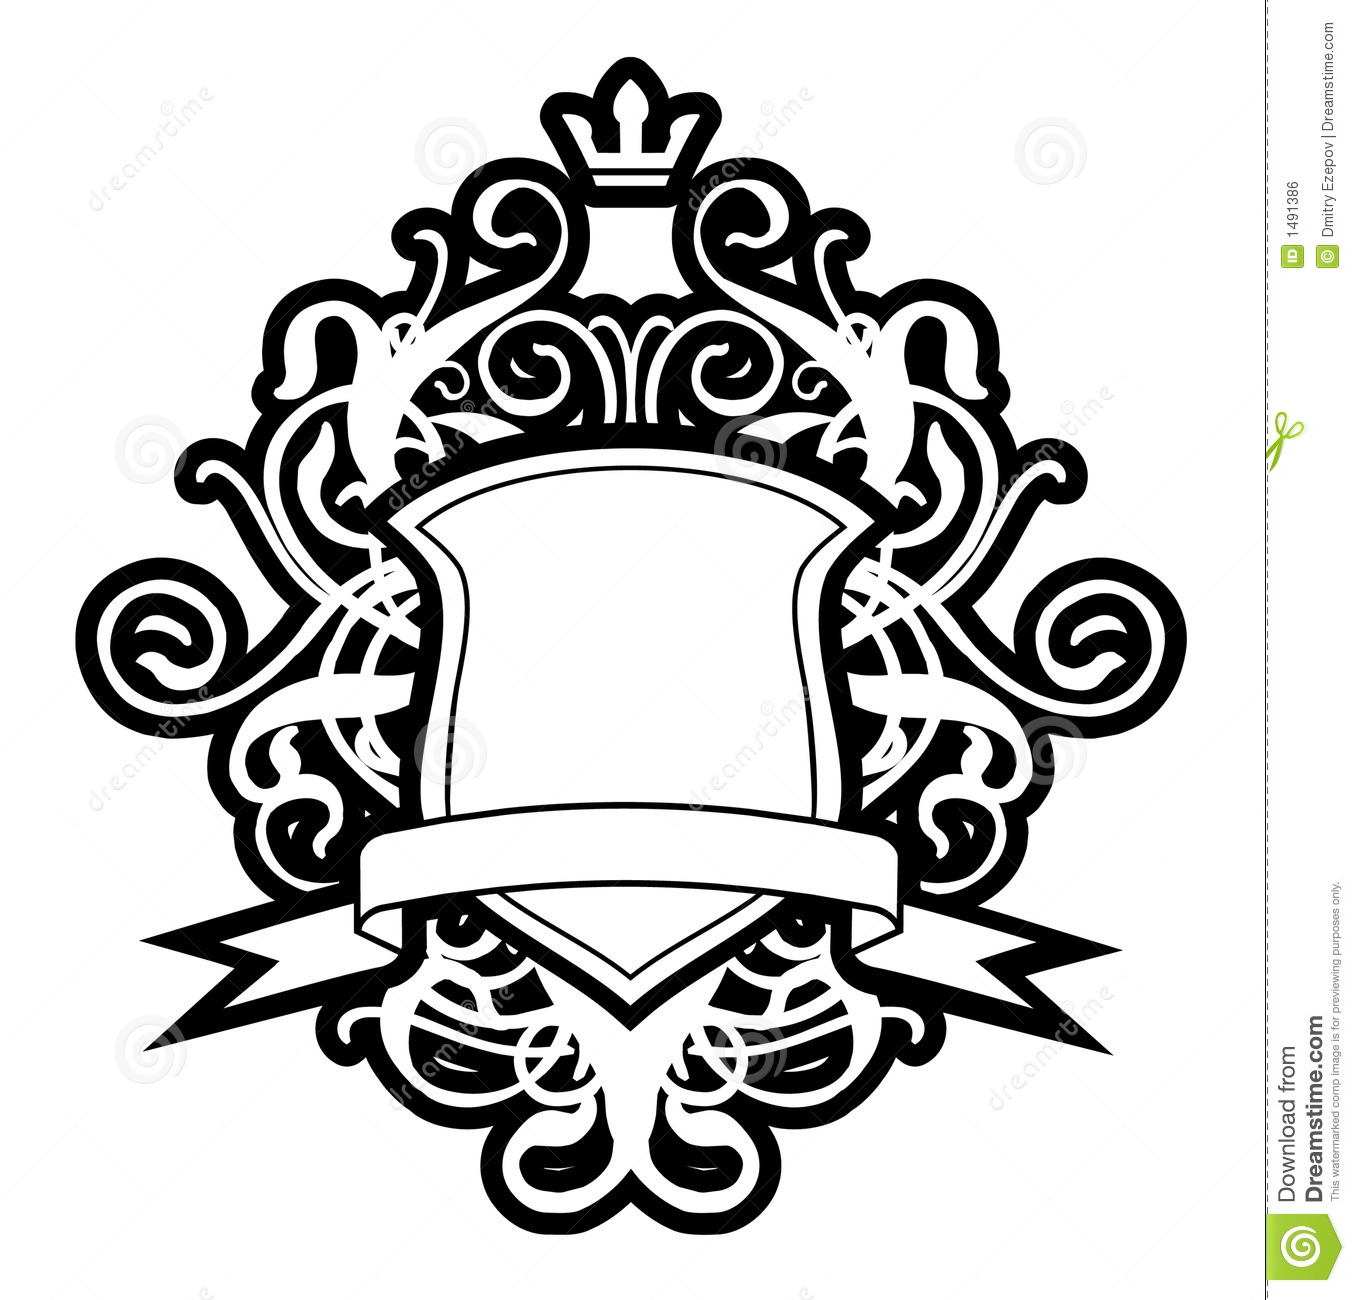 Free coat of arms clipart 5 » Clipart Station.